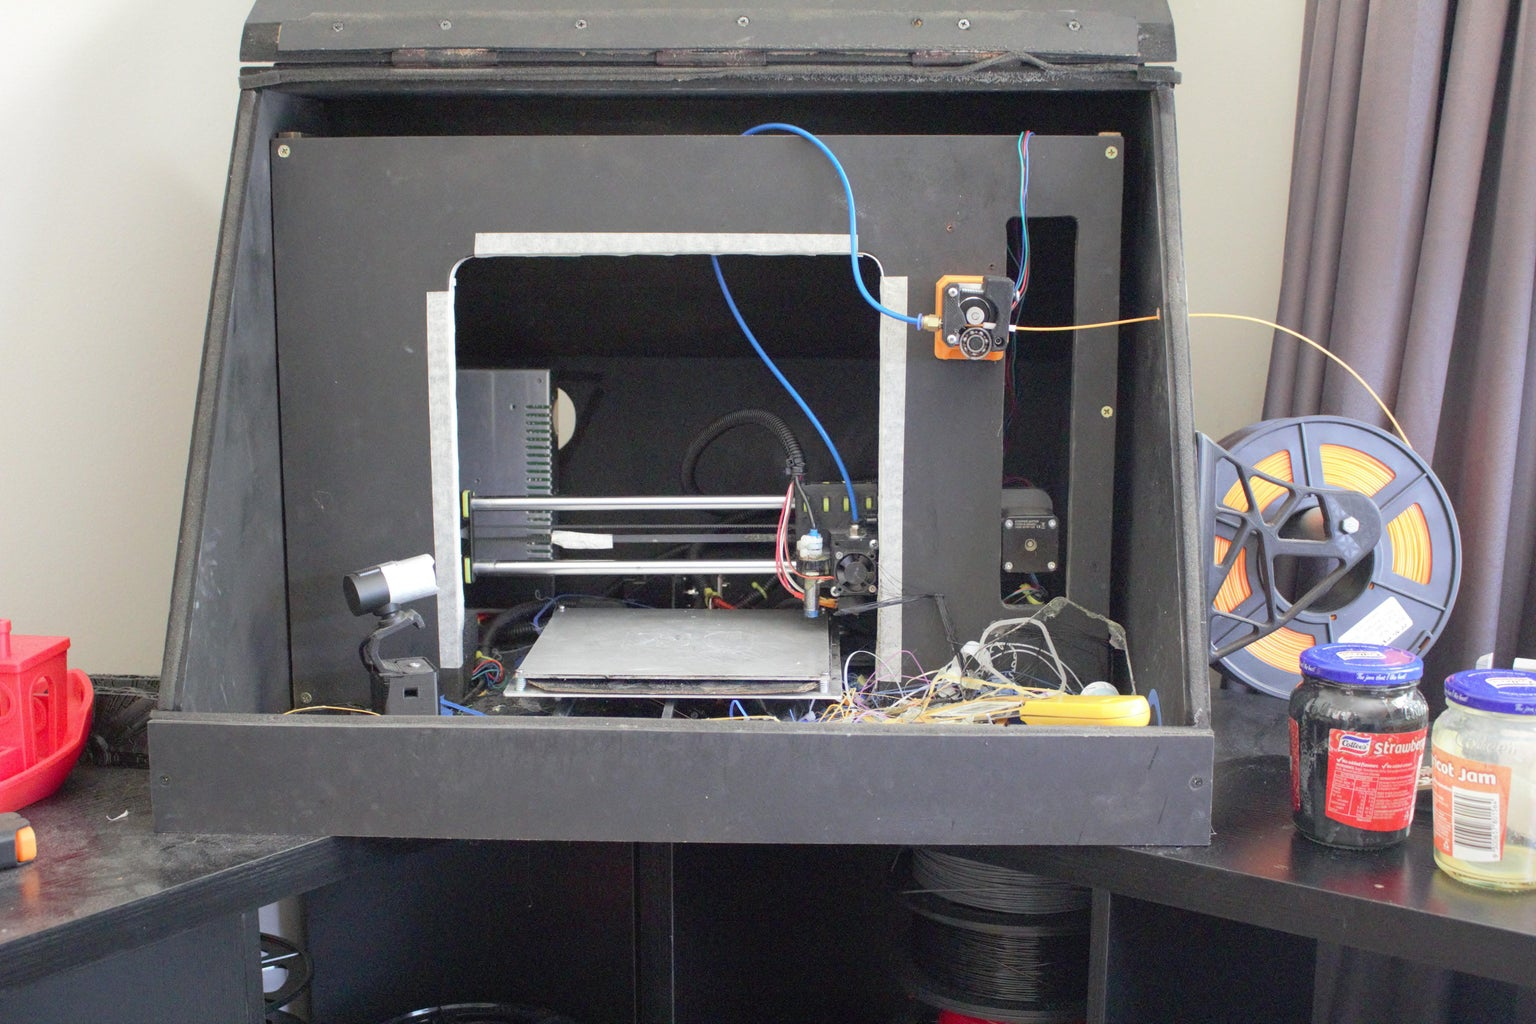 Background: Why Build a 3D Printer?